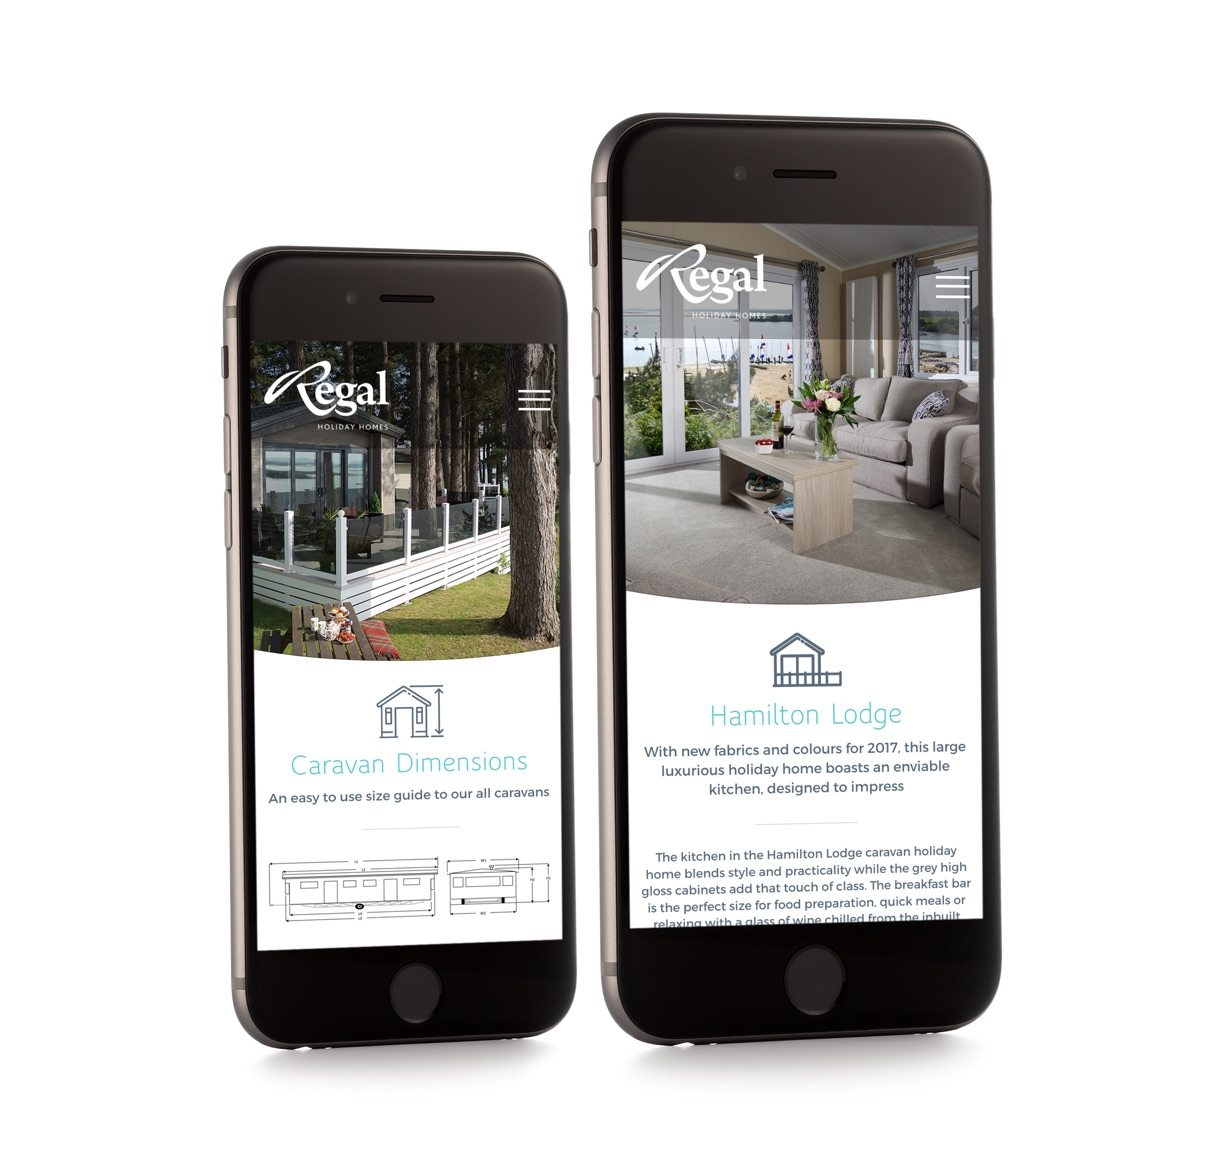 web design by Orbital - a creative agency in Bournemouth Poole Dorset